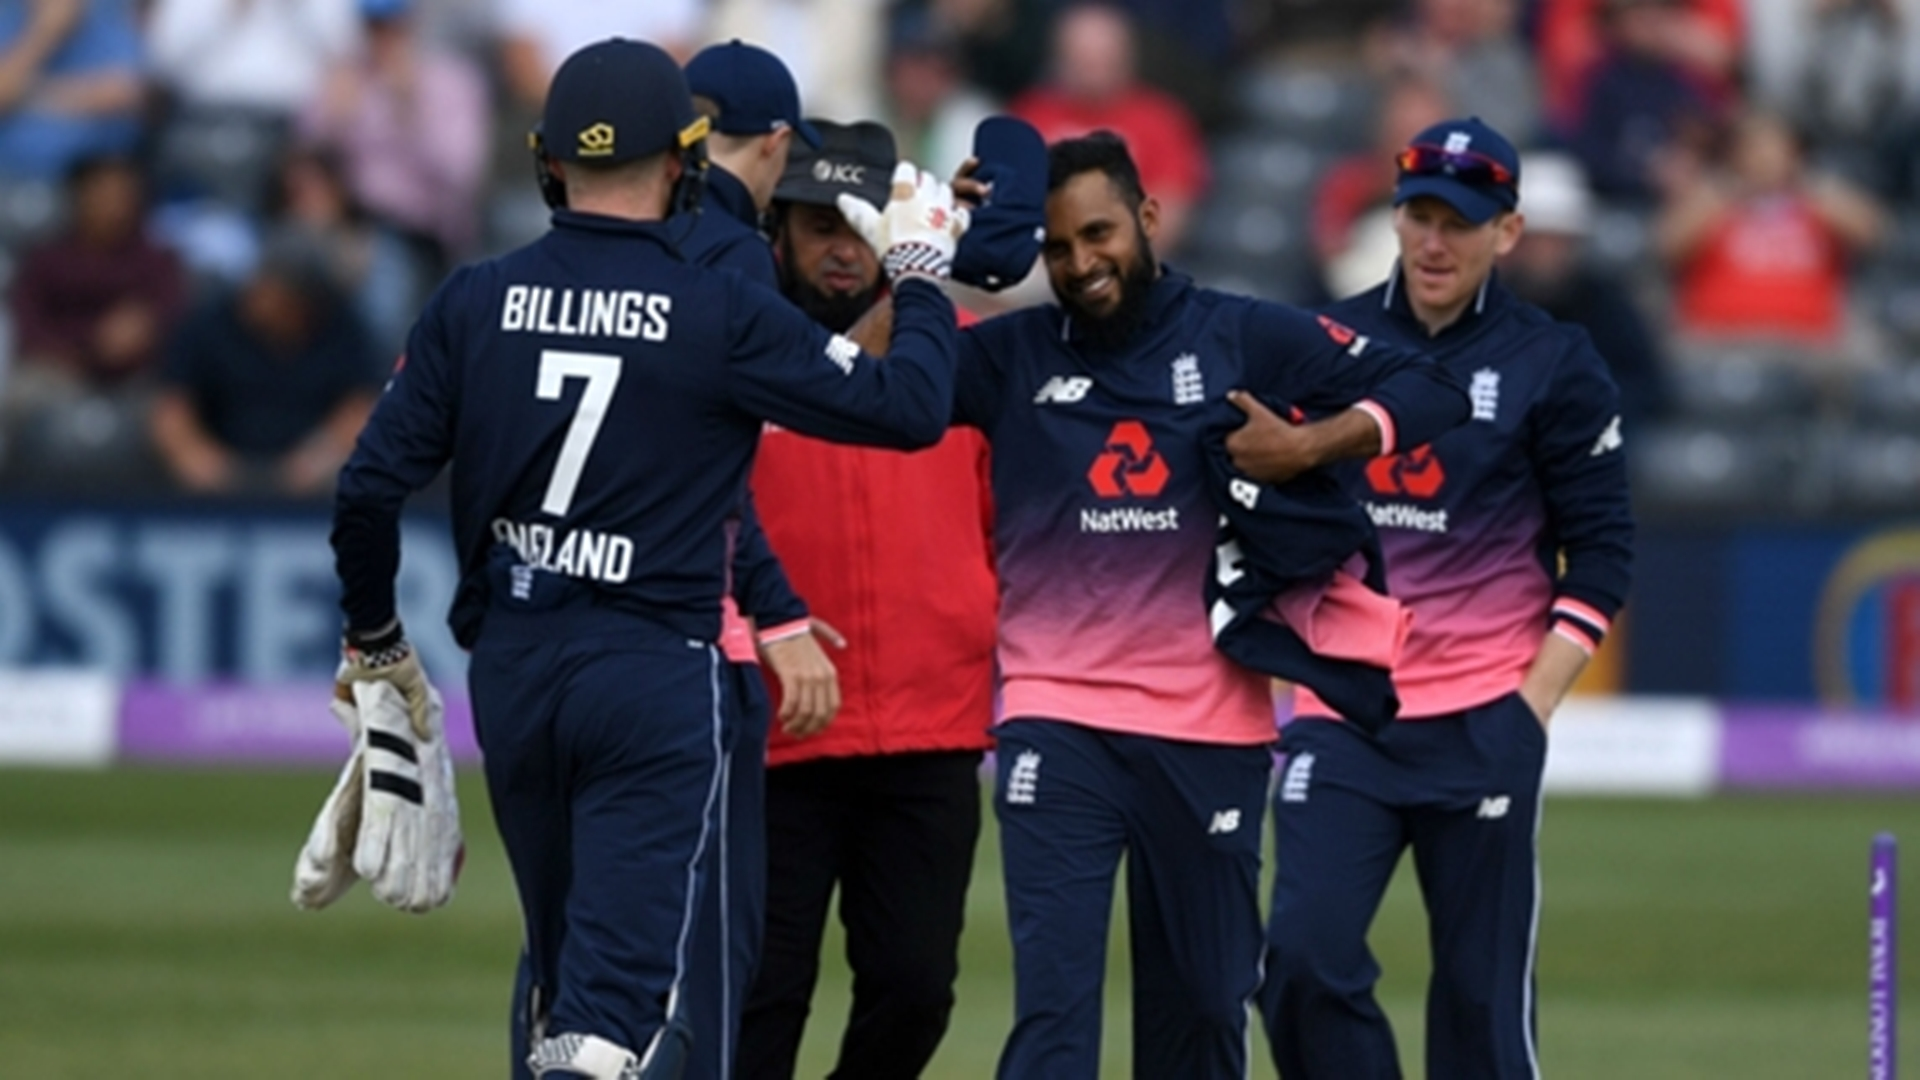 England players celebrating a wicket during the first One-Day International against Ireland on Friday in Bristol.